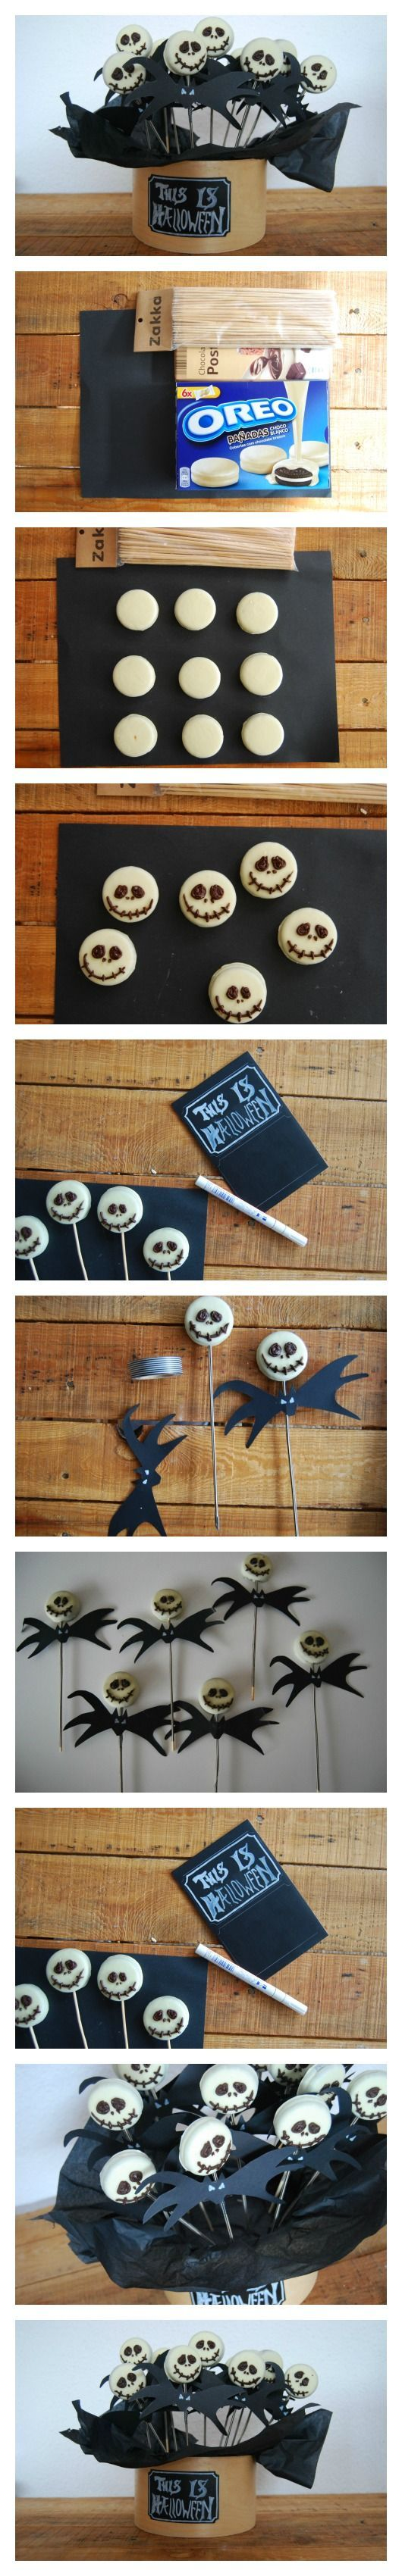 Halloween food recipes - Easy Jack Skellington cookie pop from an Oreo Cookie | sosunnyblog.blogs...